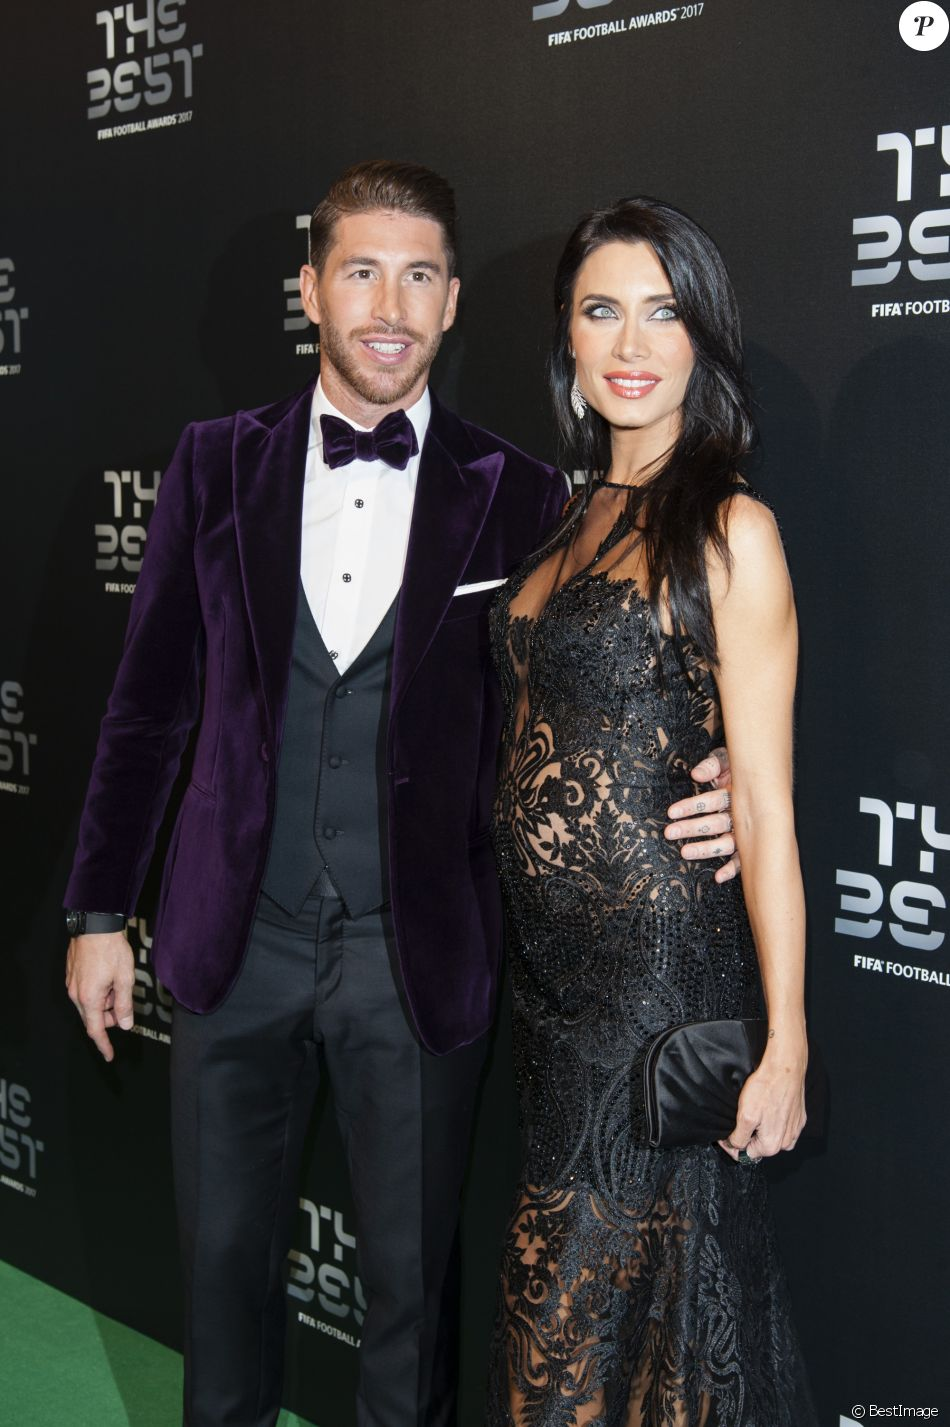 Sergio Ramos et sa compagne Pilar Rubio enceinte , The Best FIFA Football  Awards 2017 au